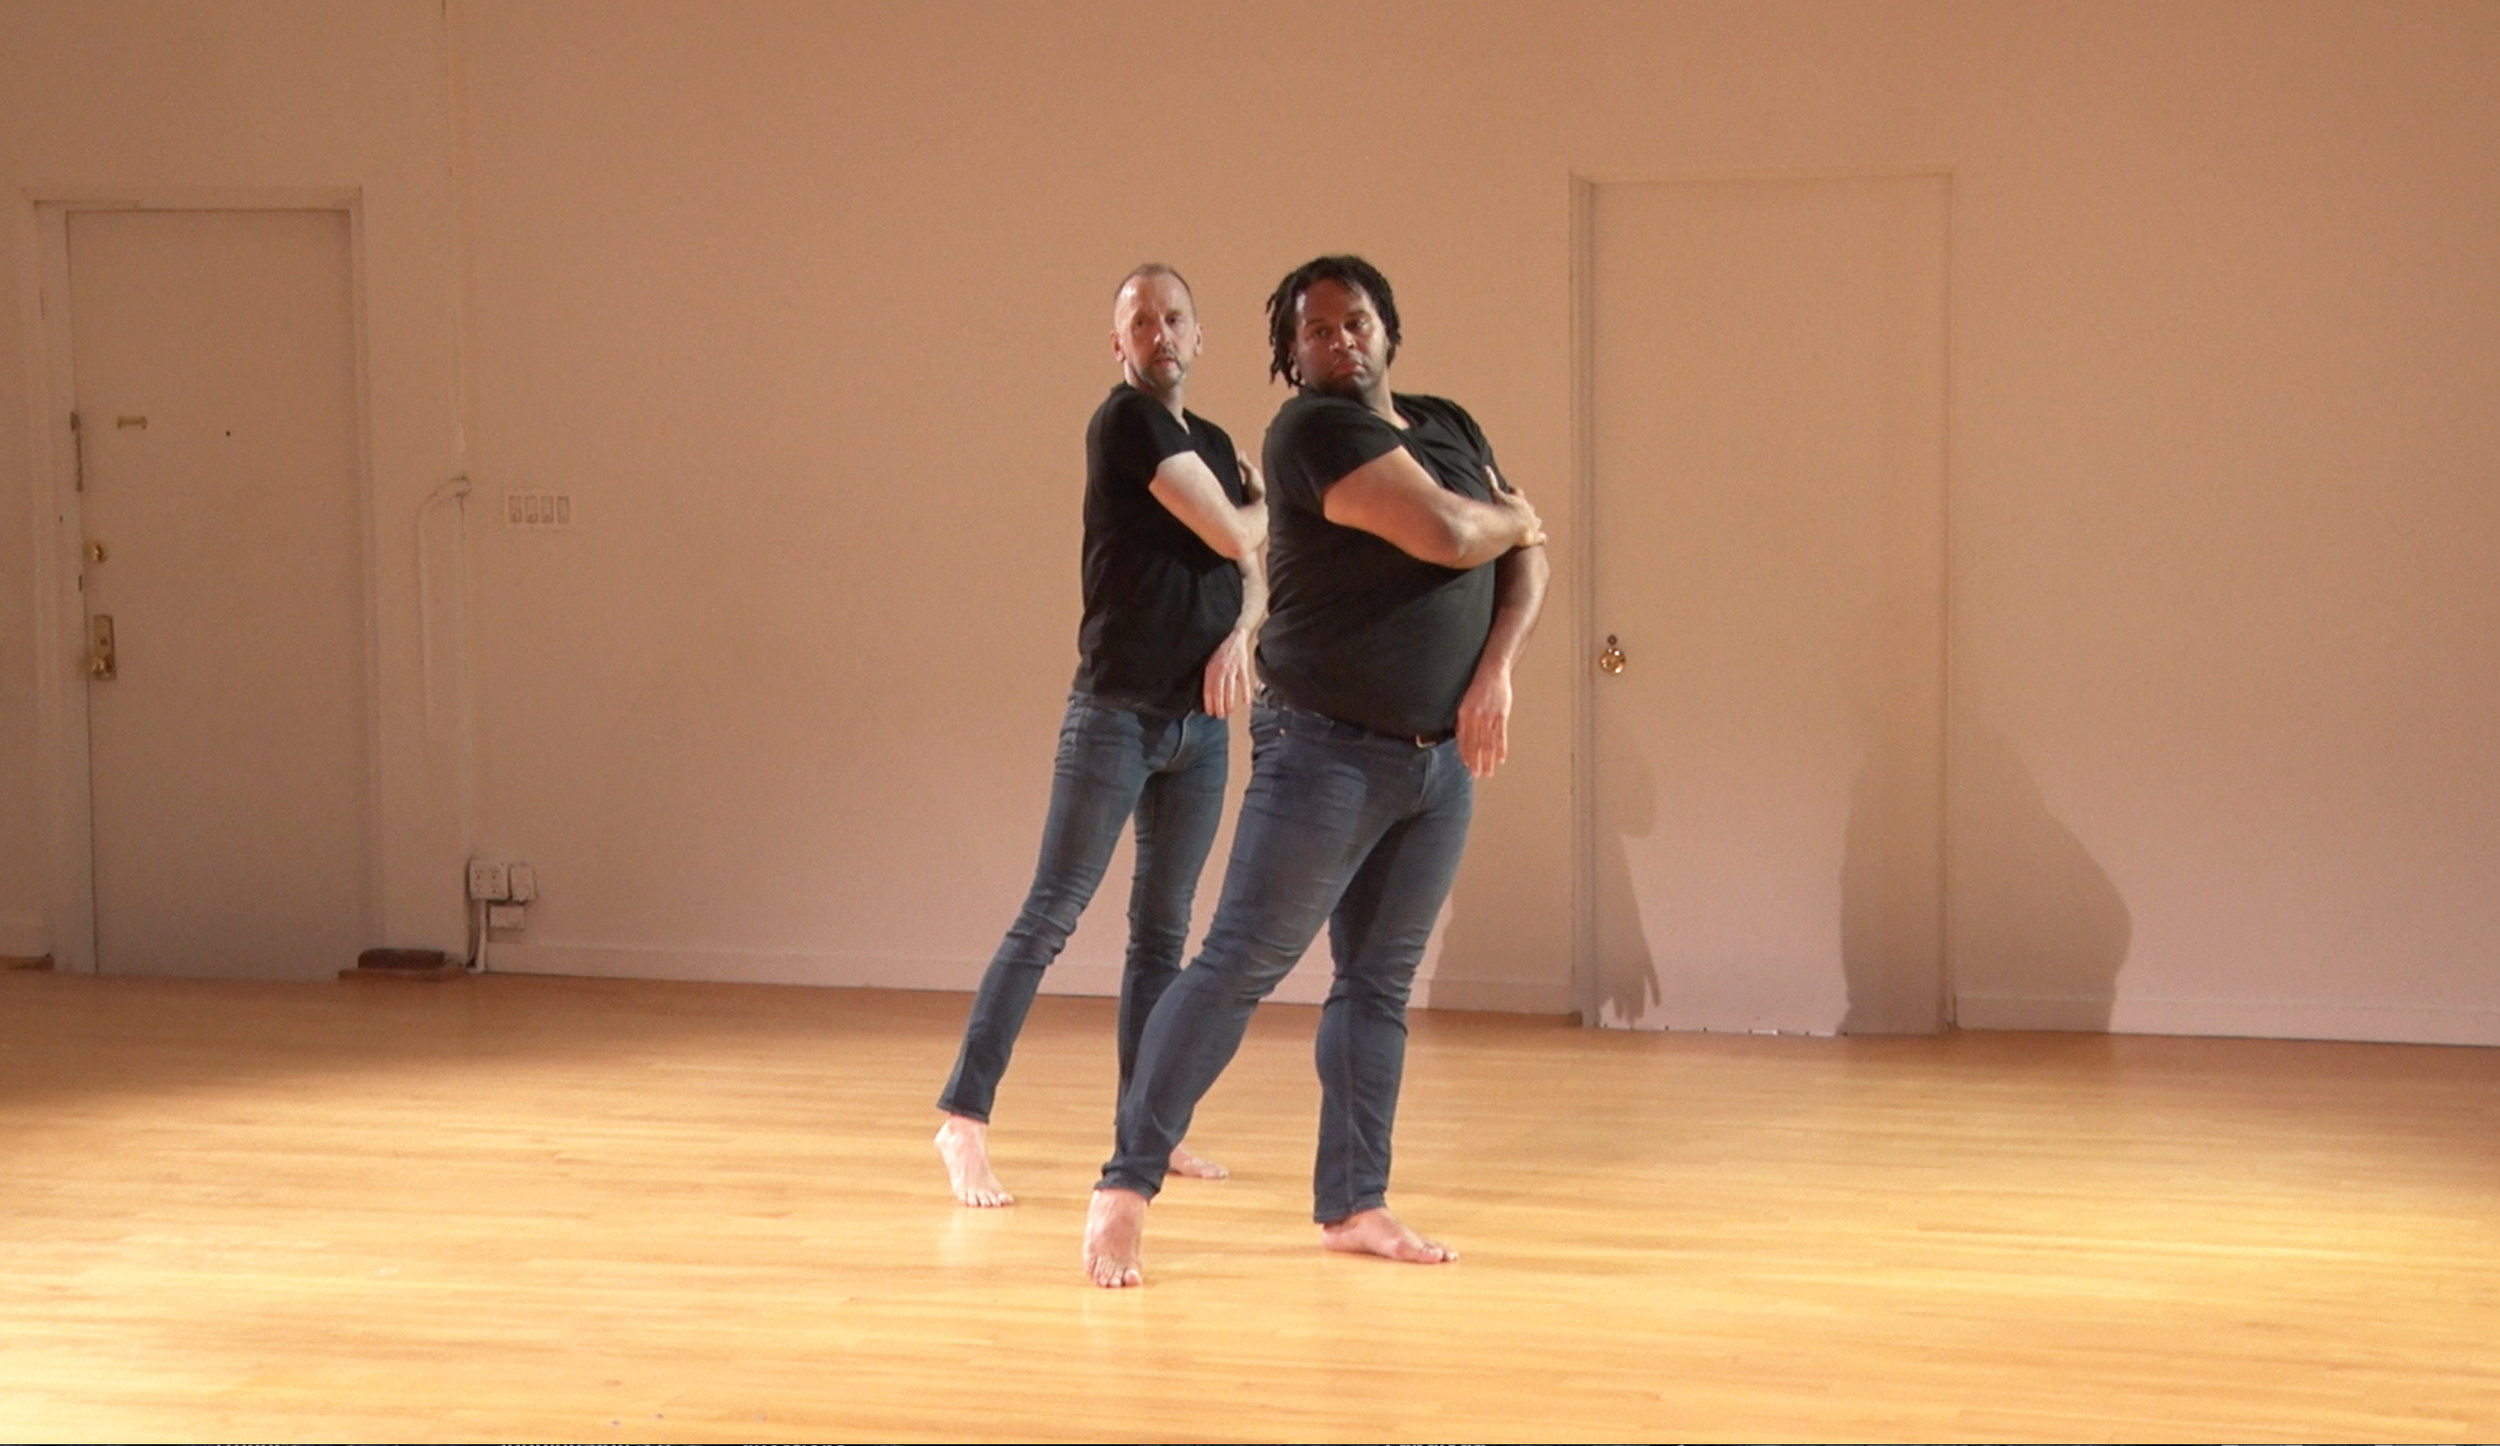 DeAngelo dancing with John Jasperse. Photo still from video by Davidson Gliotti.